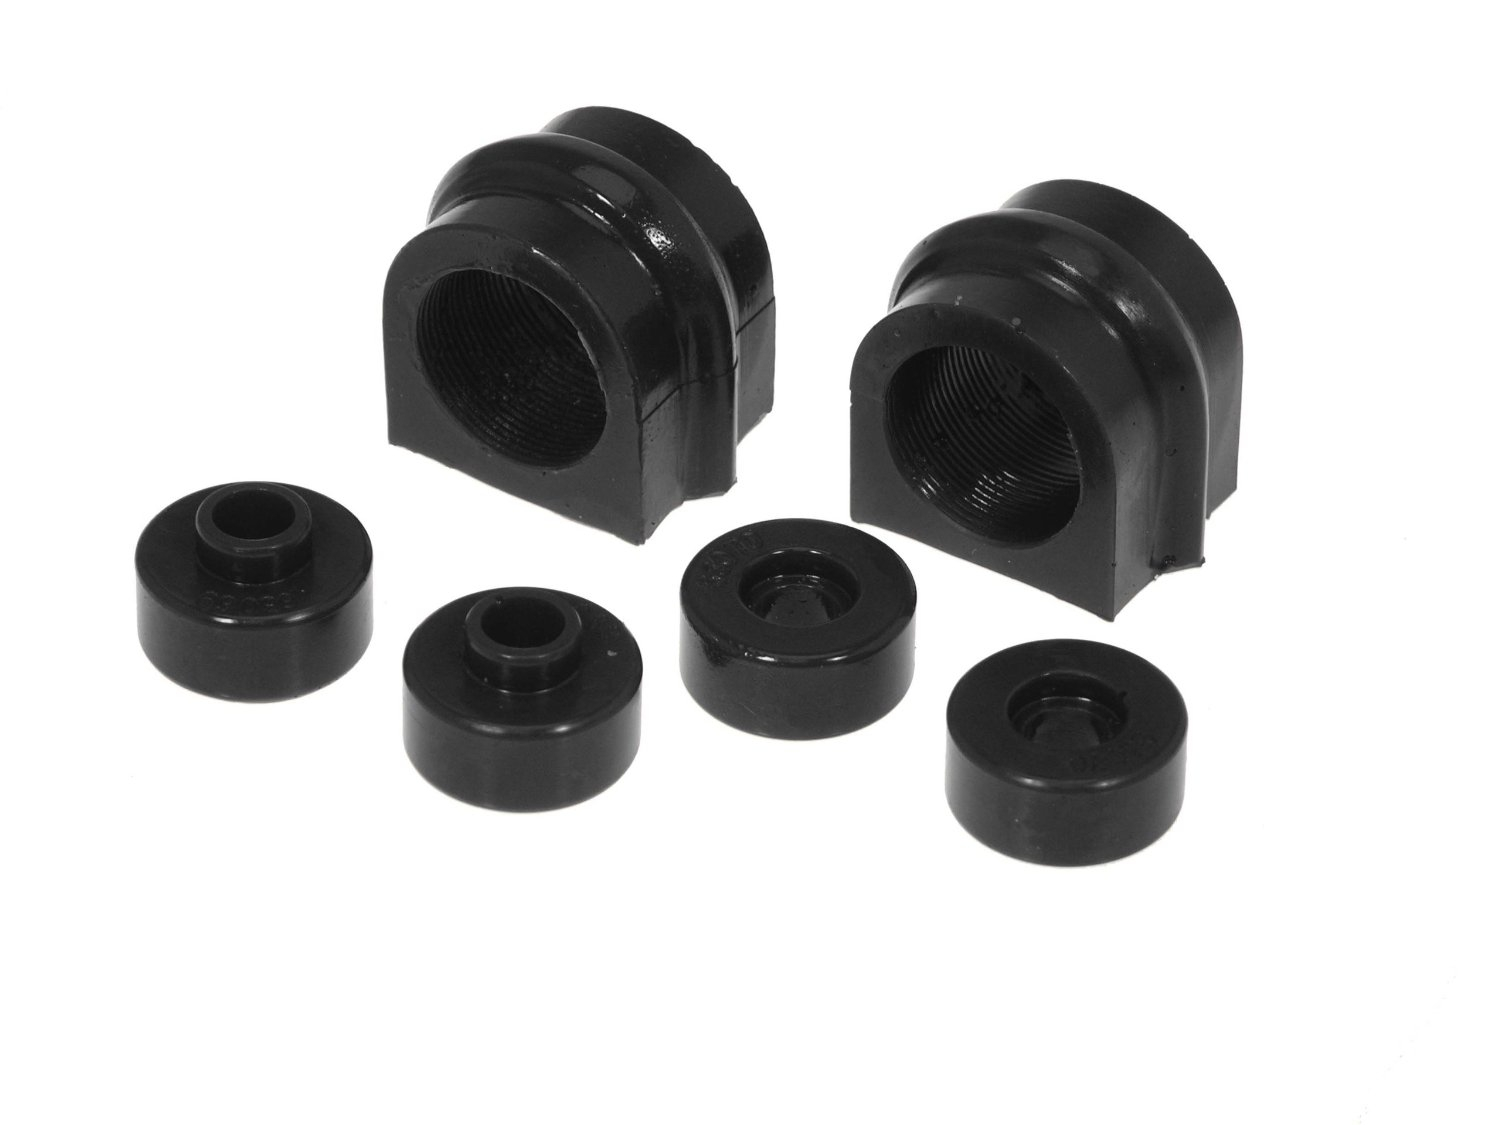 Prothane 14-1119-BL Front Sway Bar Bushing Kit, 27mm Black - Nissan 240SX 95-98 S14